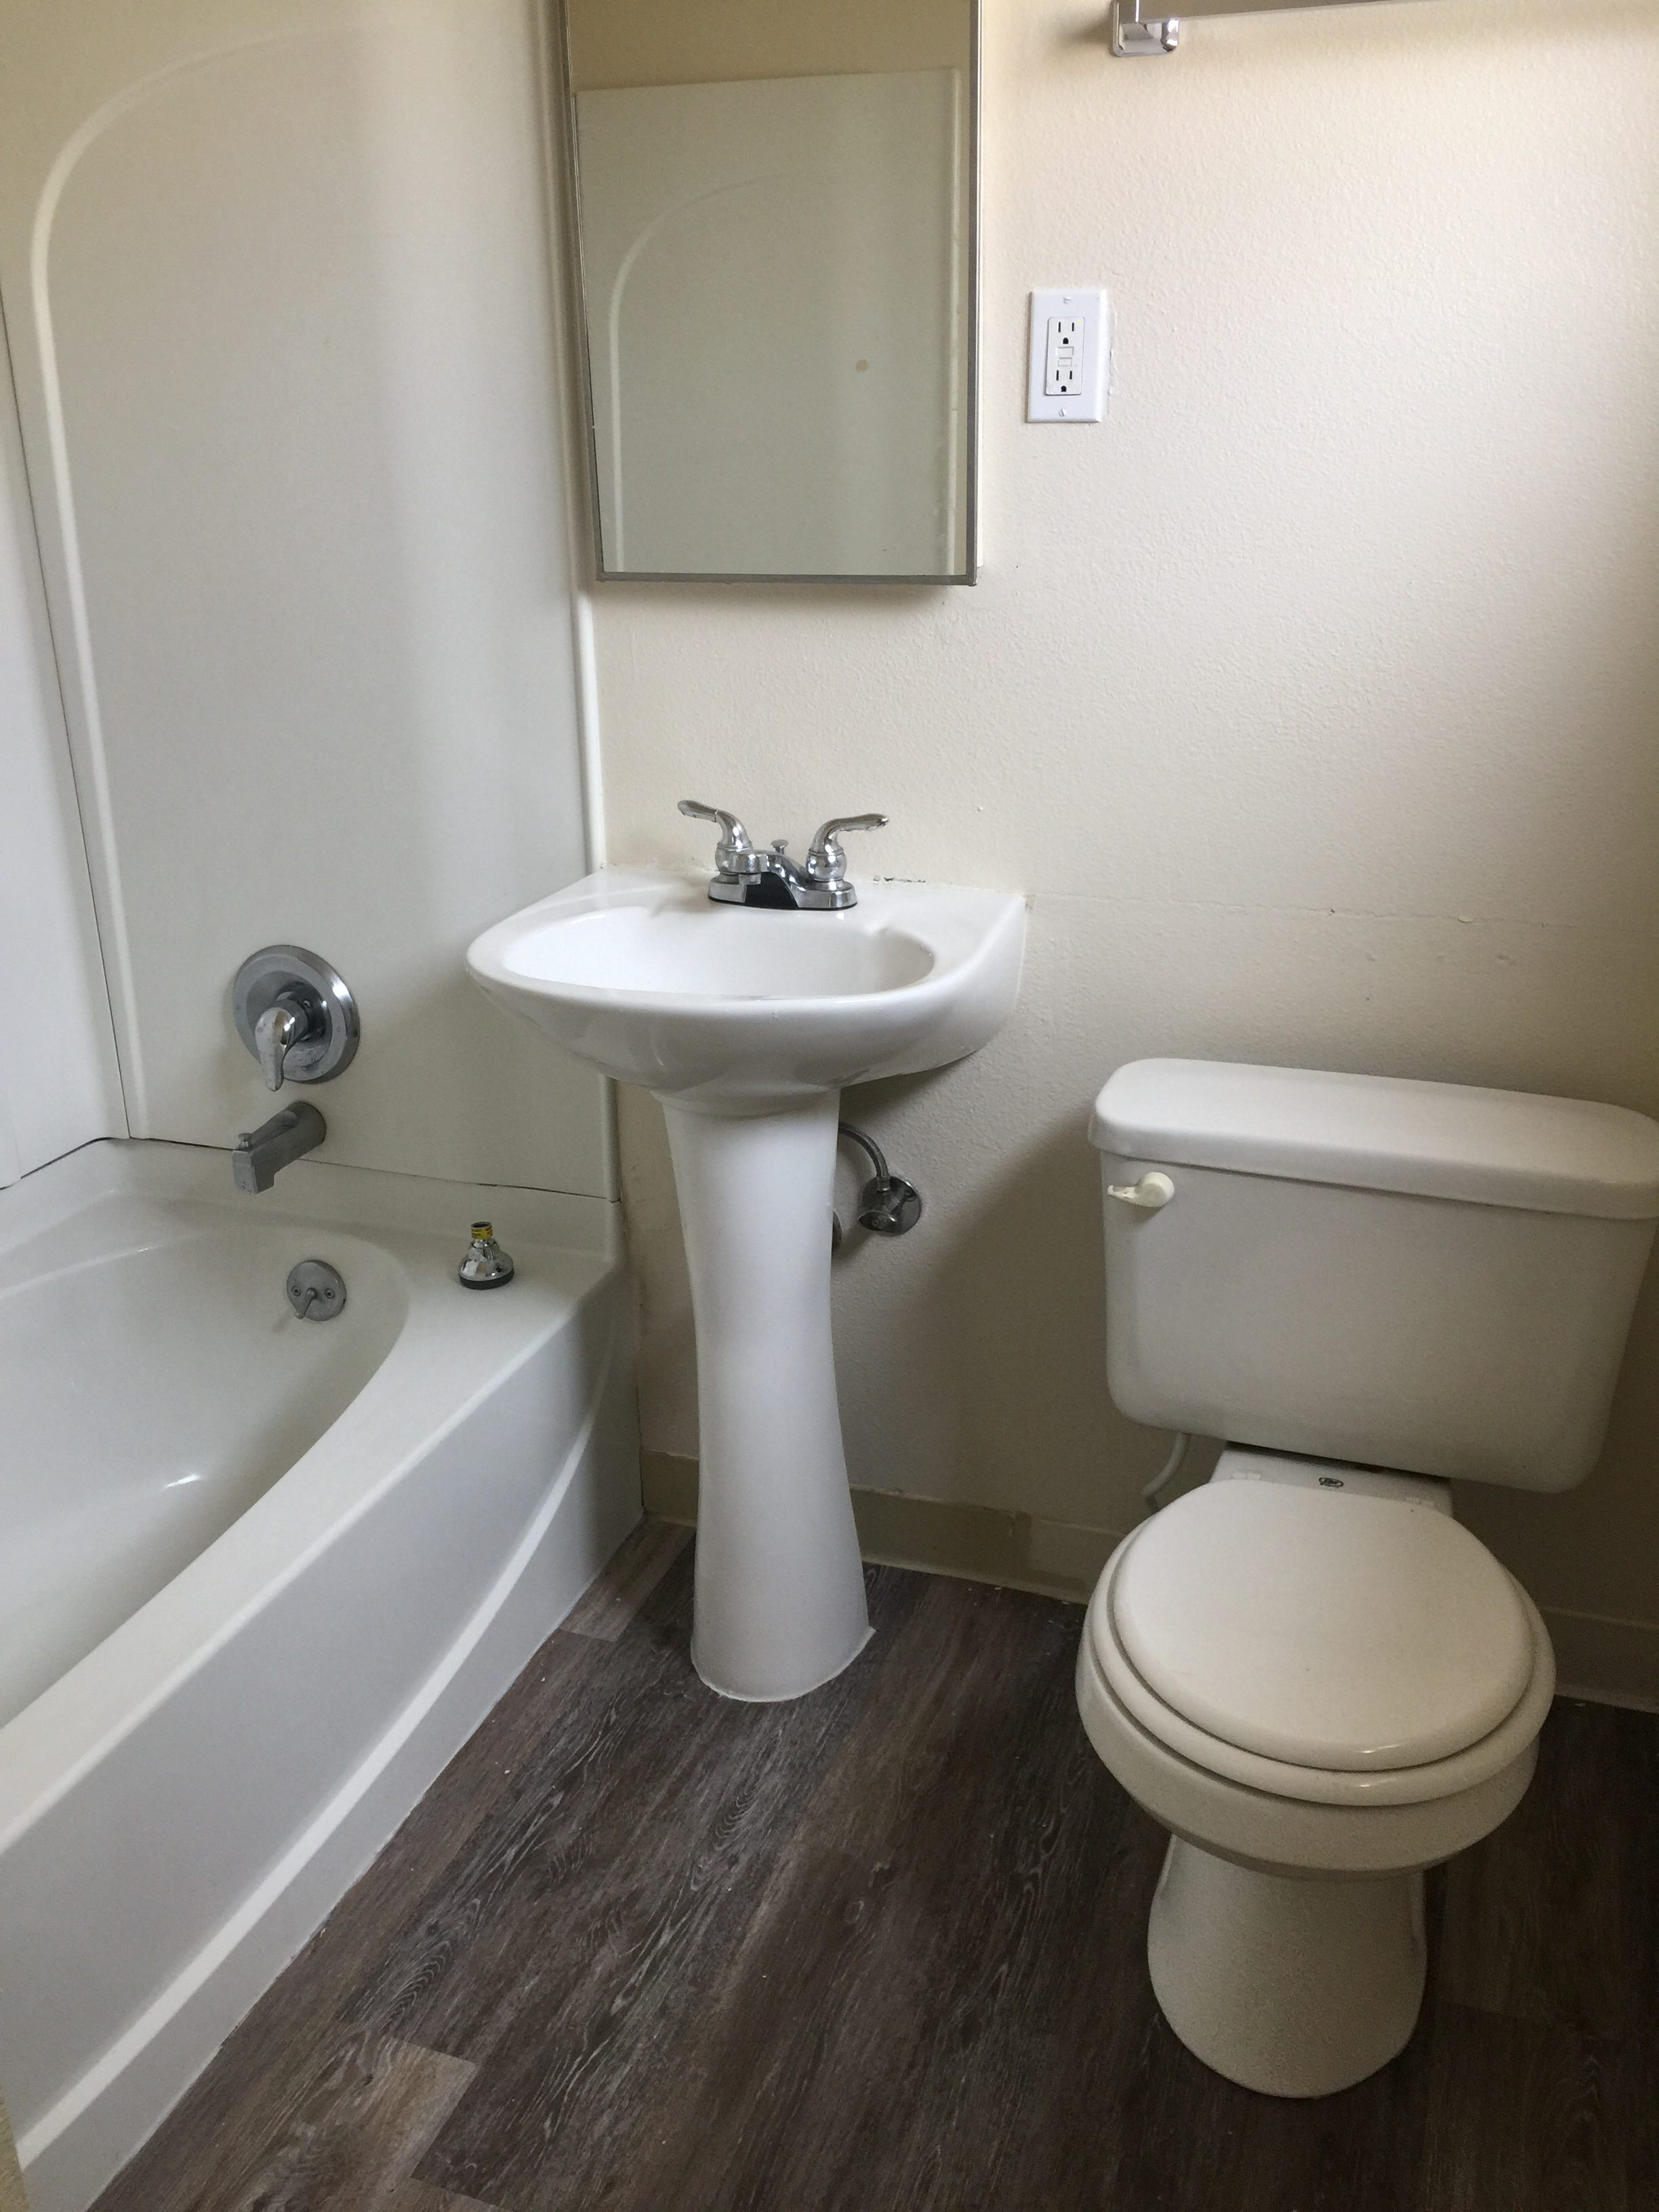 340-cheney-bathroom-e1485122585751